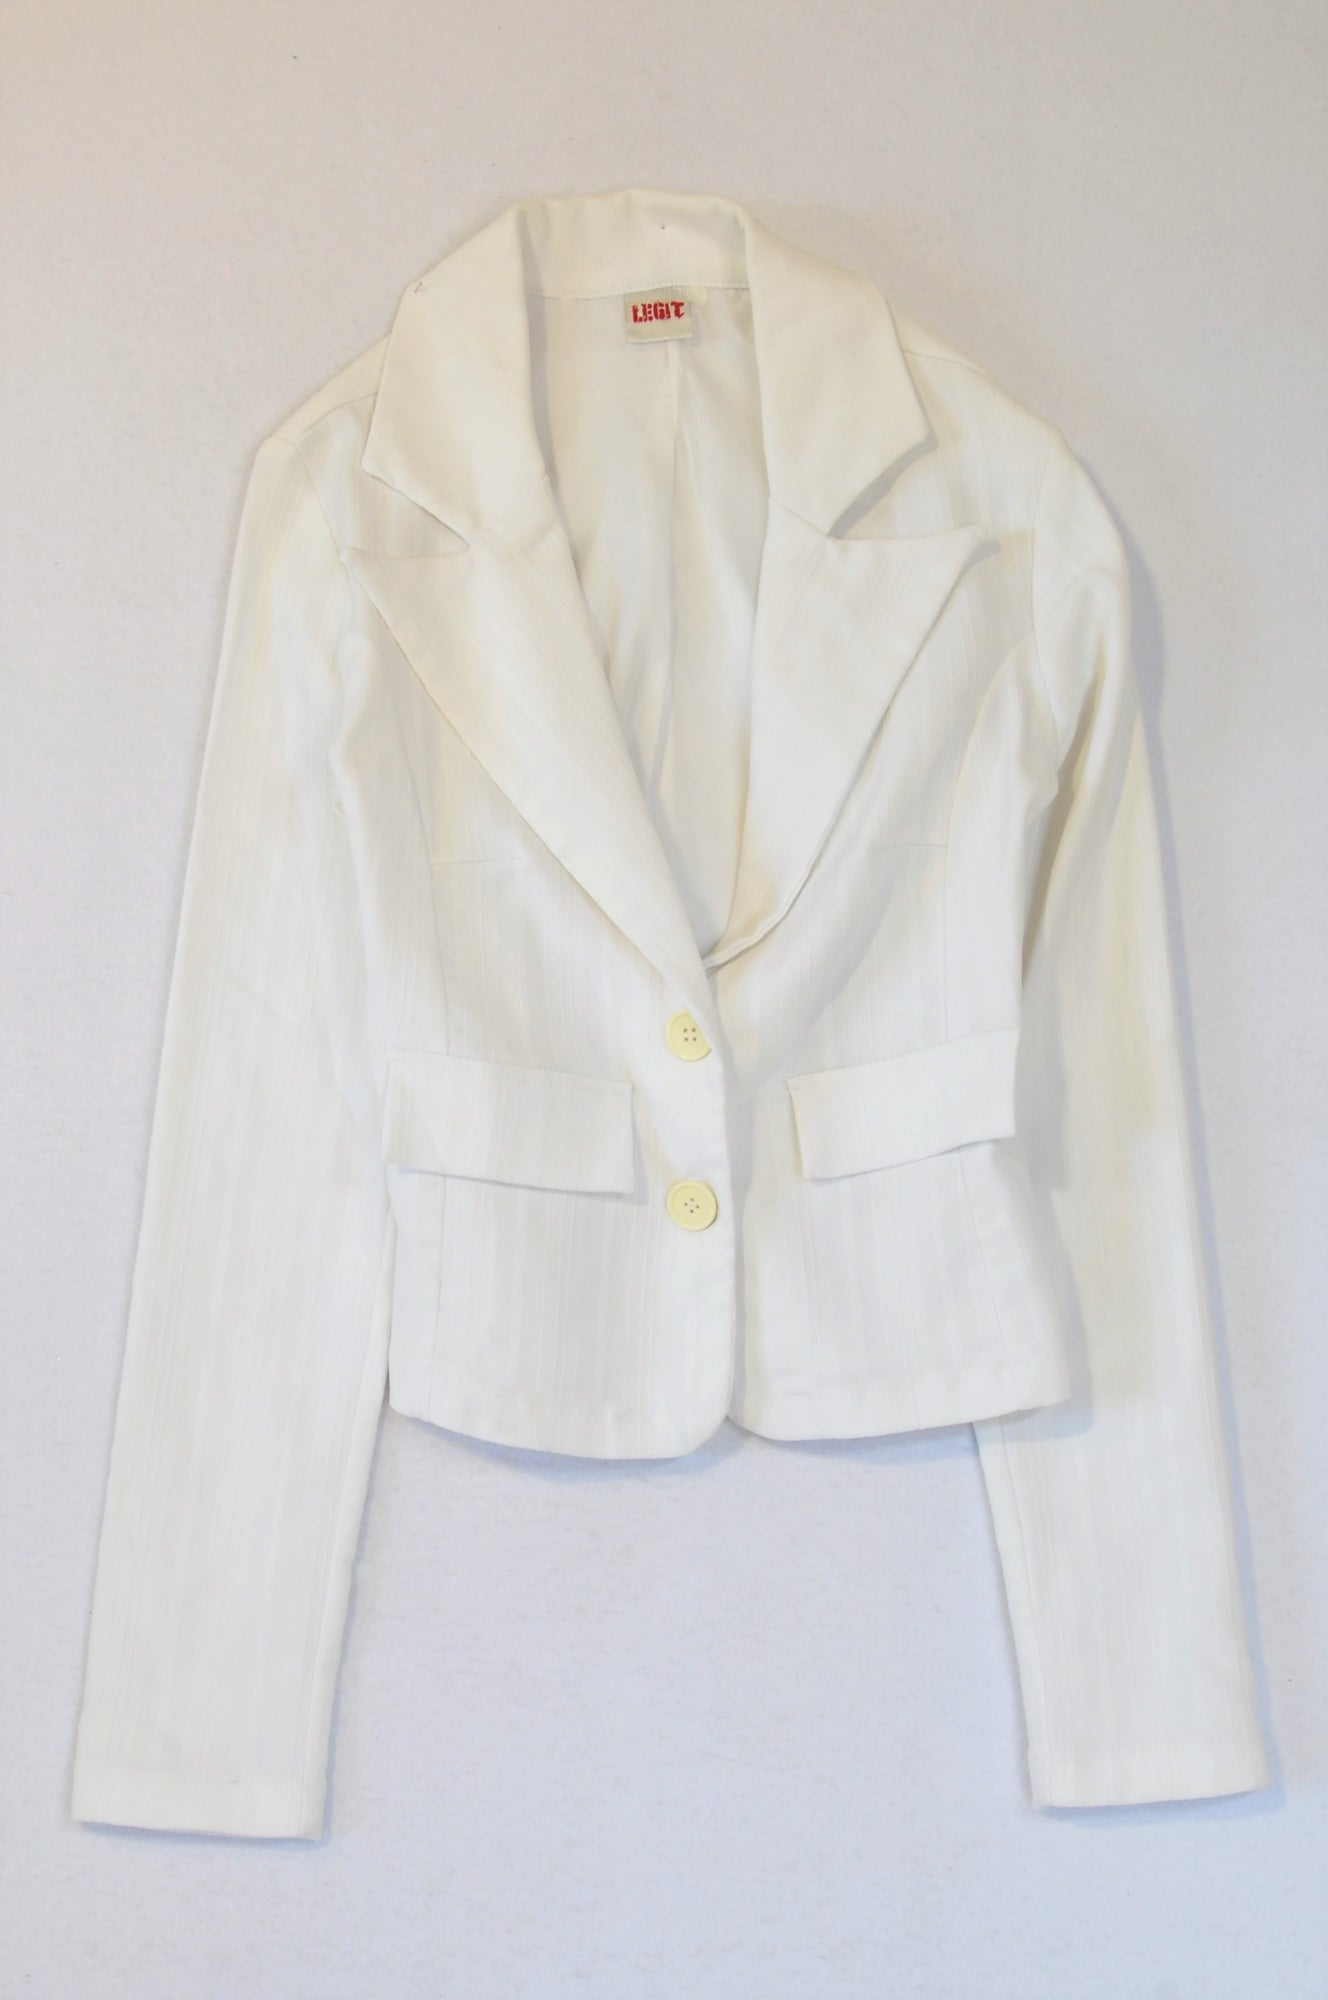 Legit White Lined Cropped Blazer Women Size 8